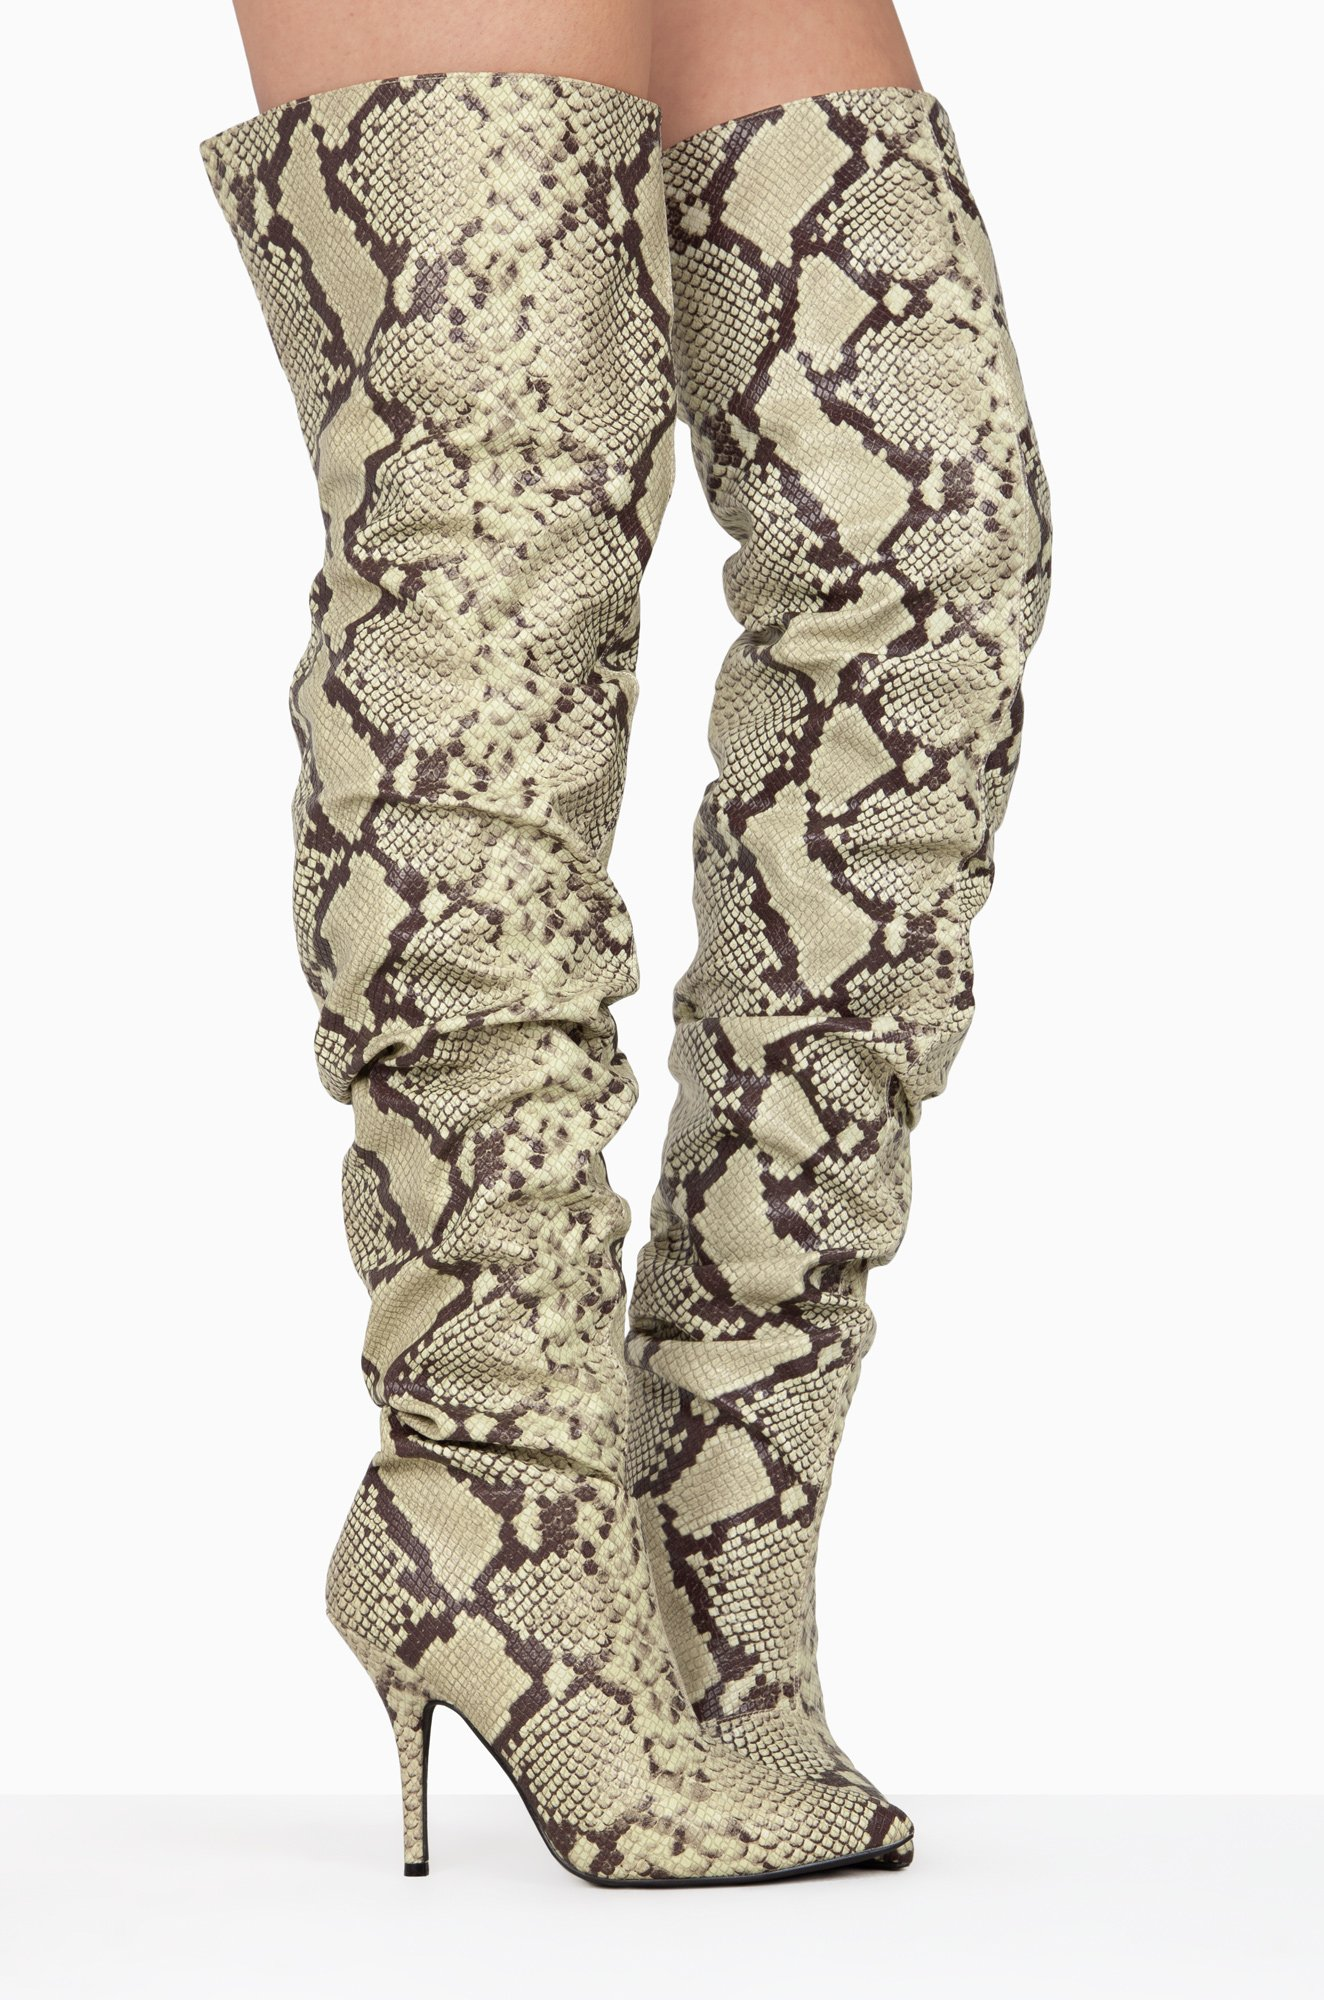 Cape-Robbin-Bown-Snake-Thigh-High-Slouch-Pointed-Toe-Over-The-Knee-Stiletto-Boot thumbnail 51